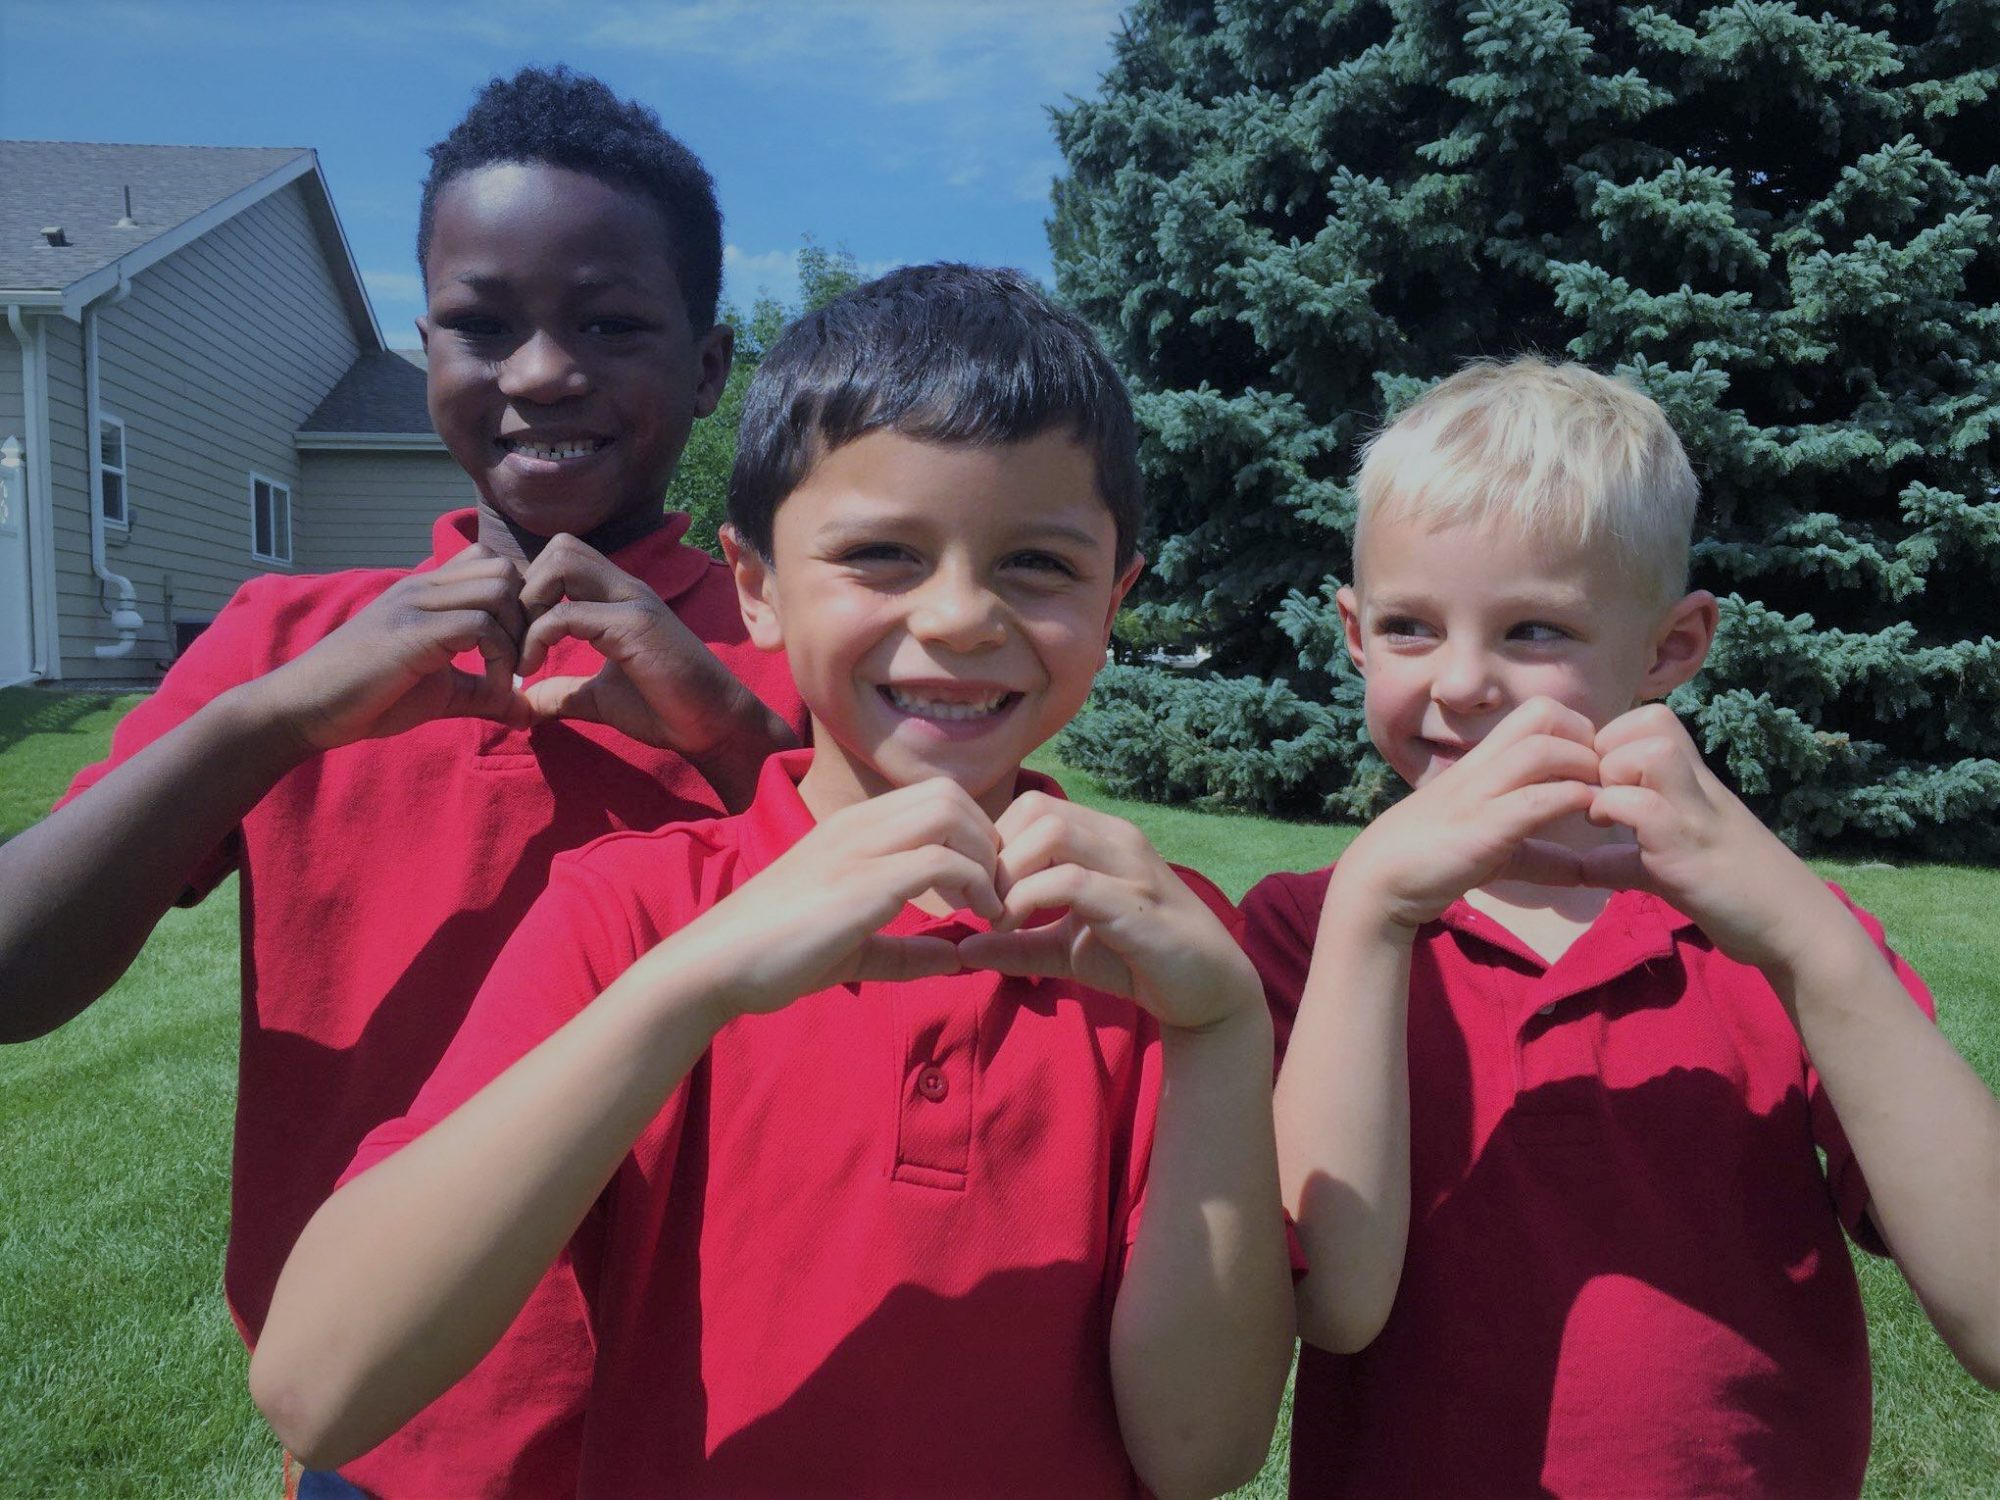 3 children smiling and making hearts with their hands.